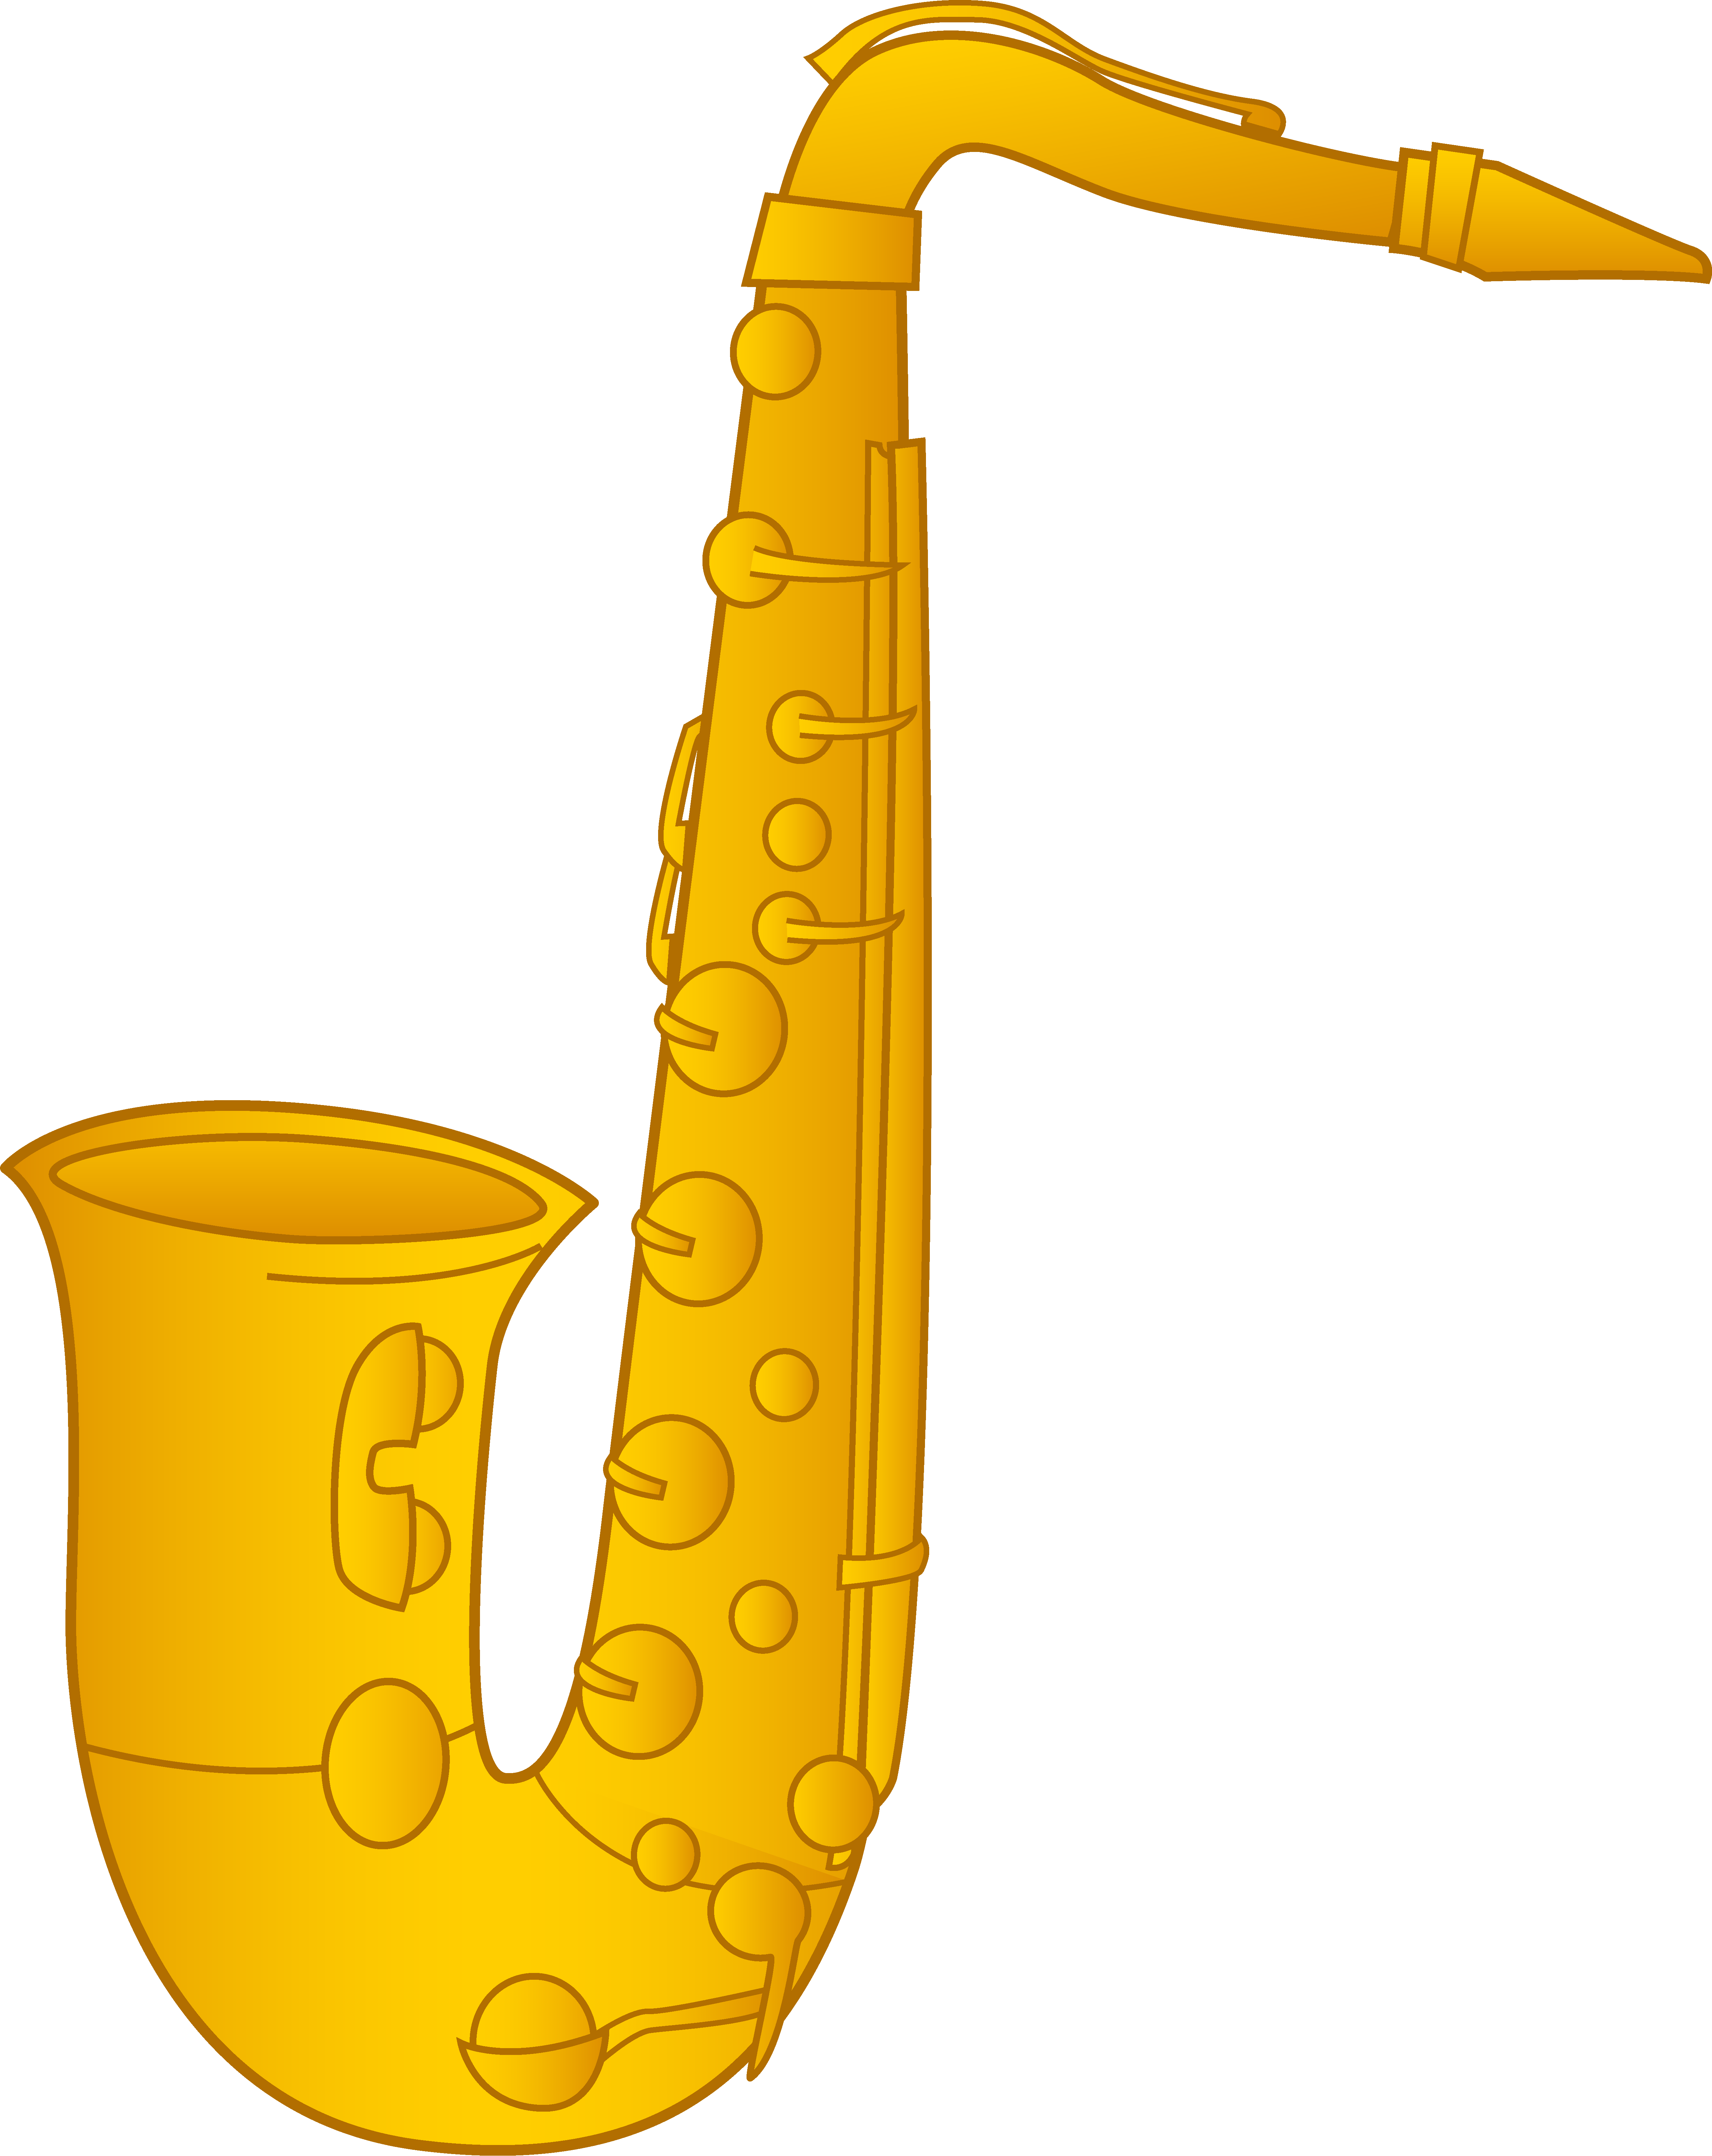 Free jazz big band clipart transparent background. Clip art library